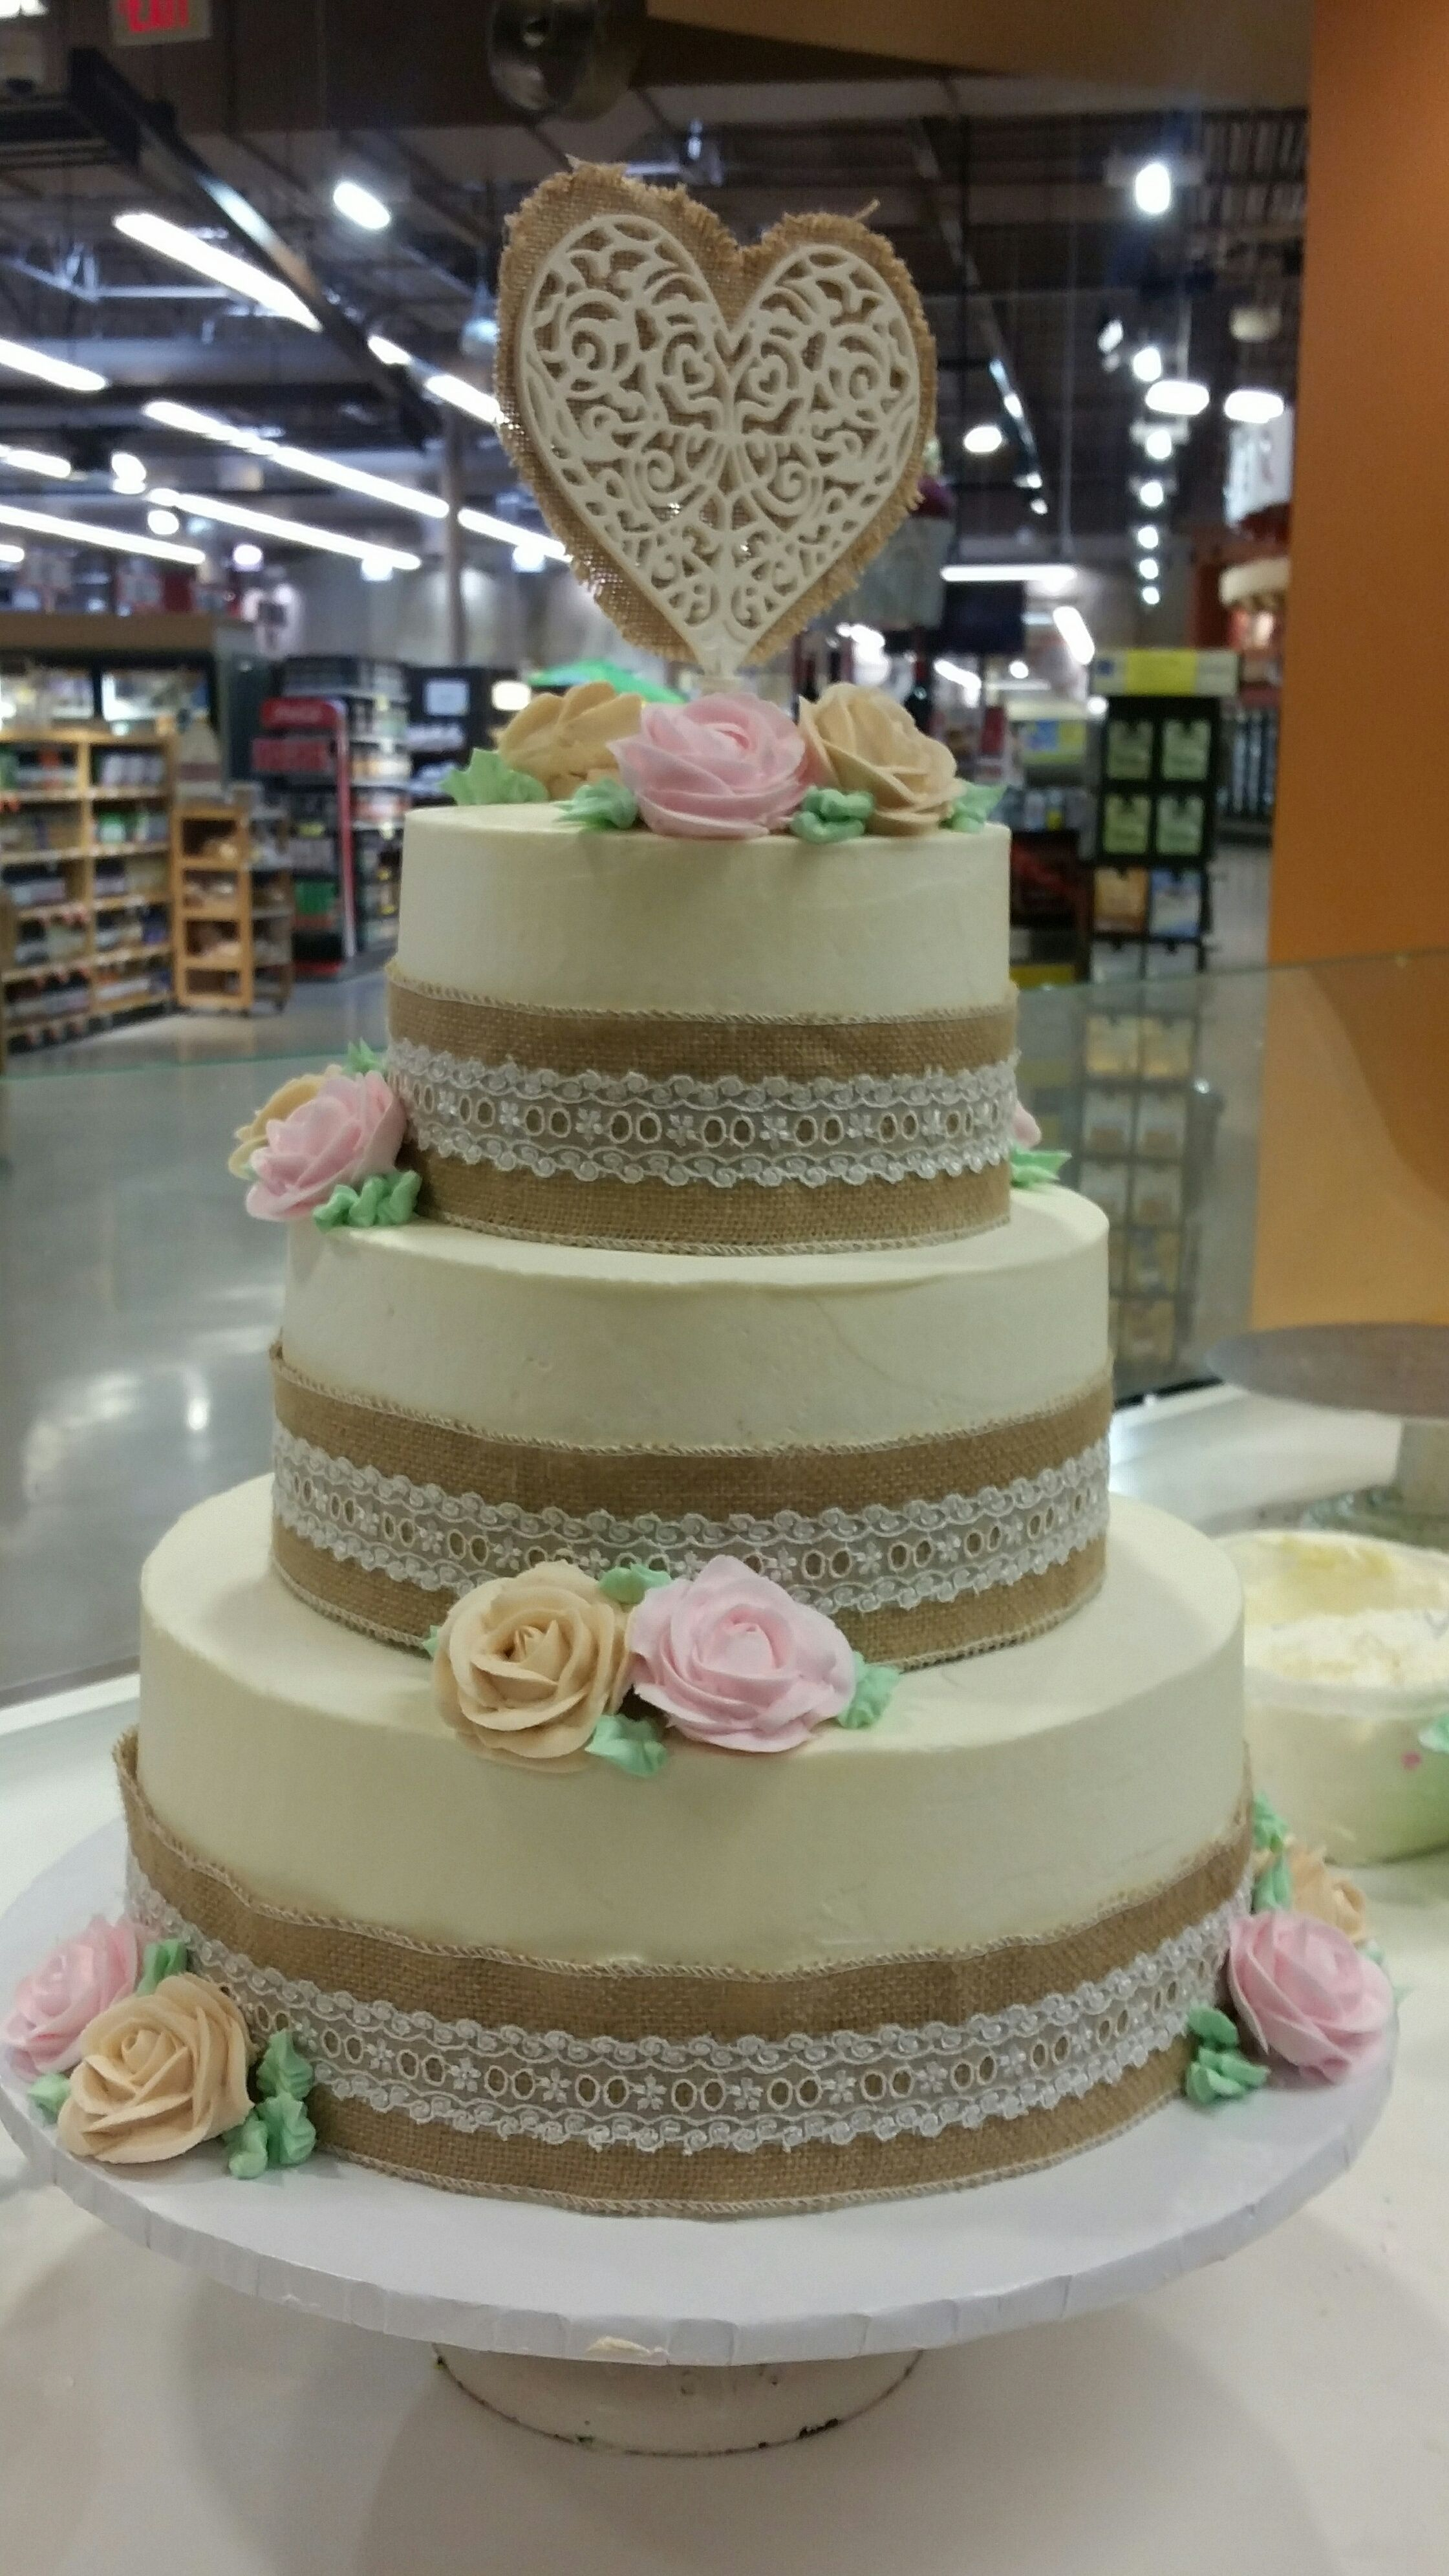 An awesome wedding cake made by our Canton bakery. So